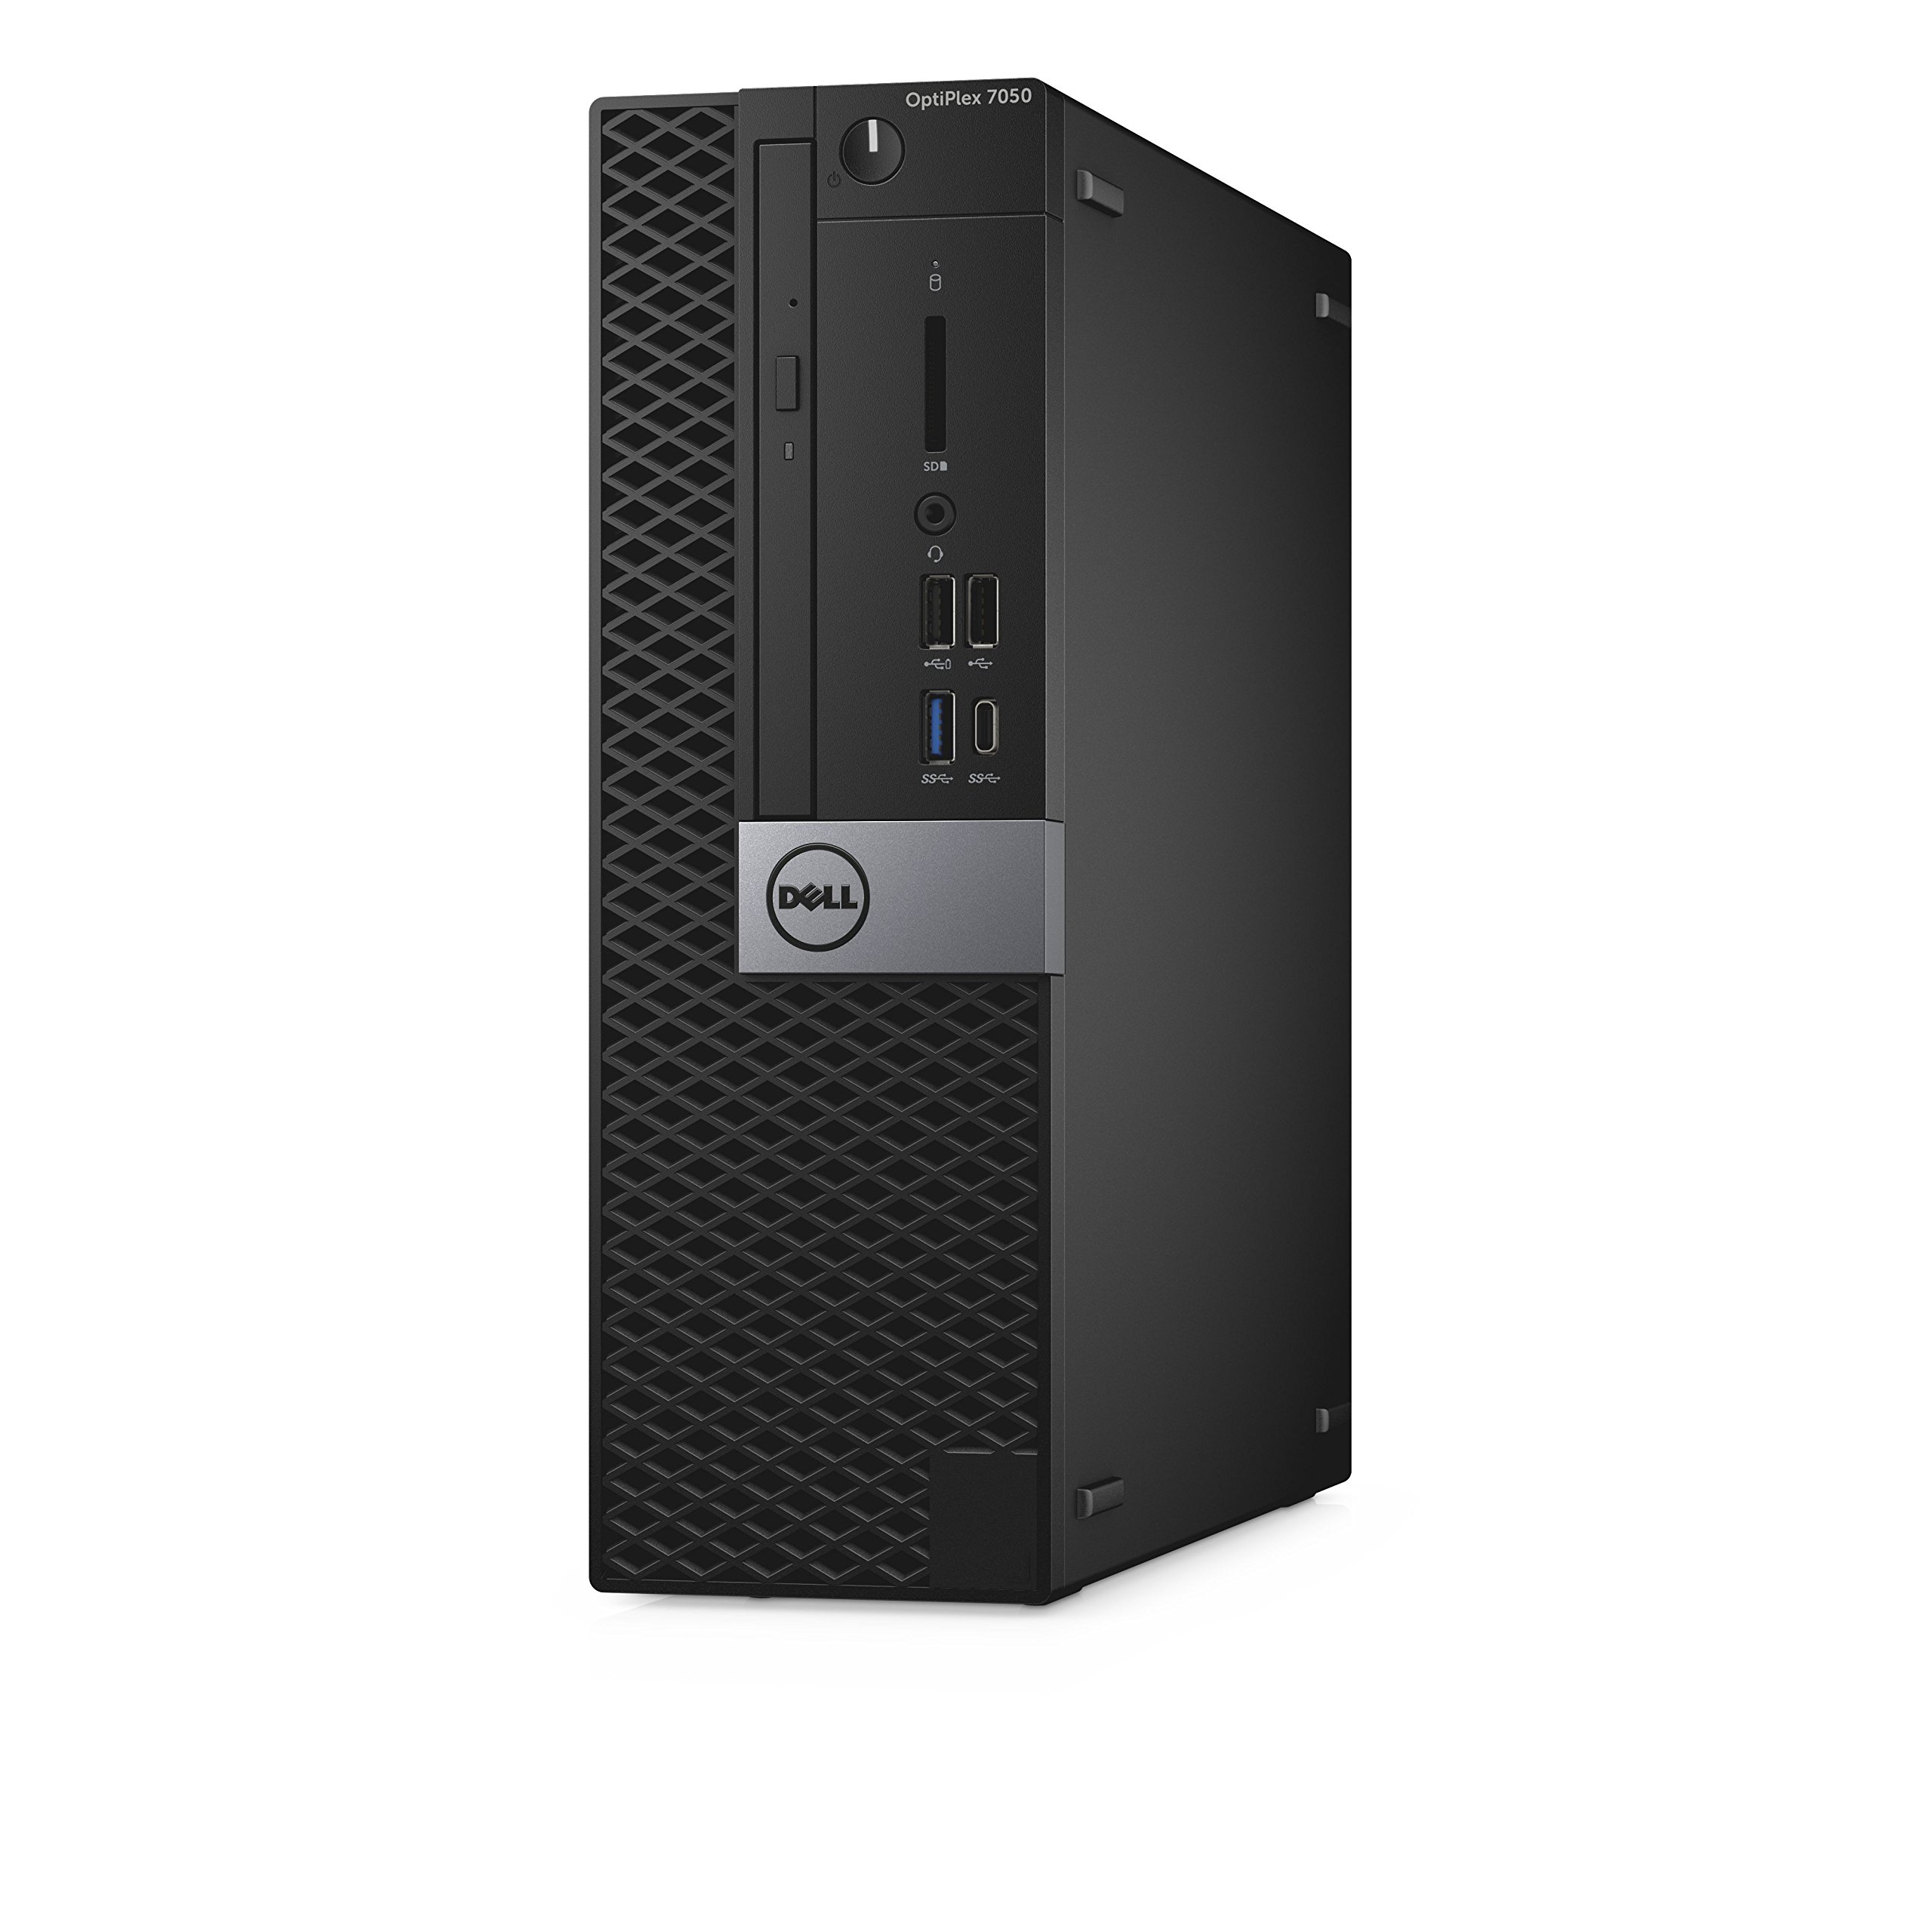 Dell OptiPlex 7050 Small Form Factor Desktop Computer, Intel Core i7-7700, 8GB DDR4, 1TB Hard Drive, Windows 10 Pro (HDHJD) by Dell